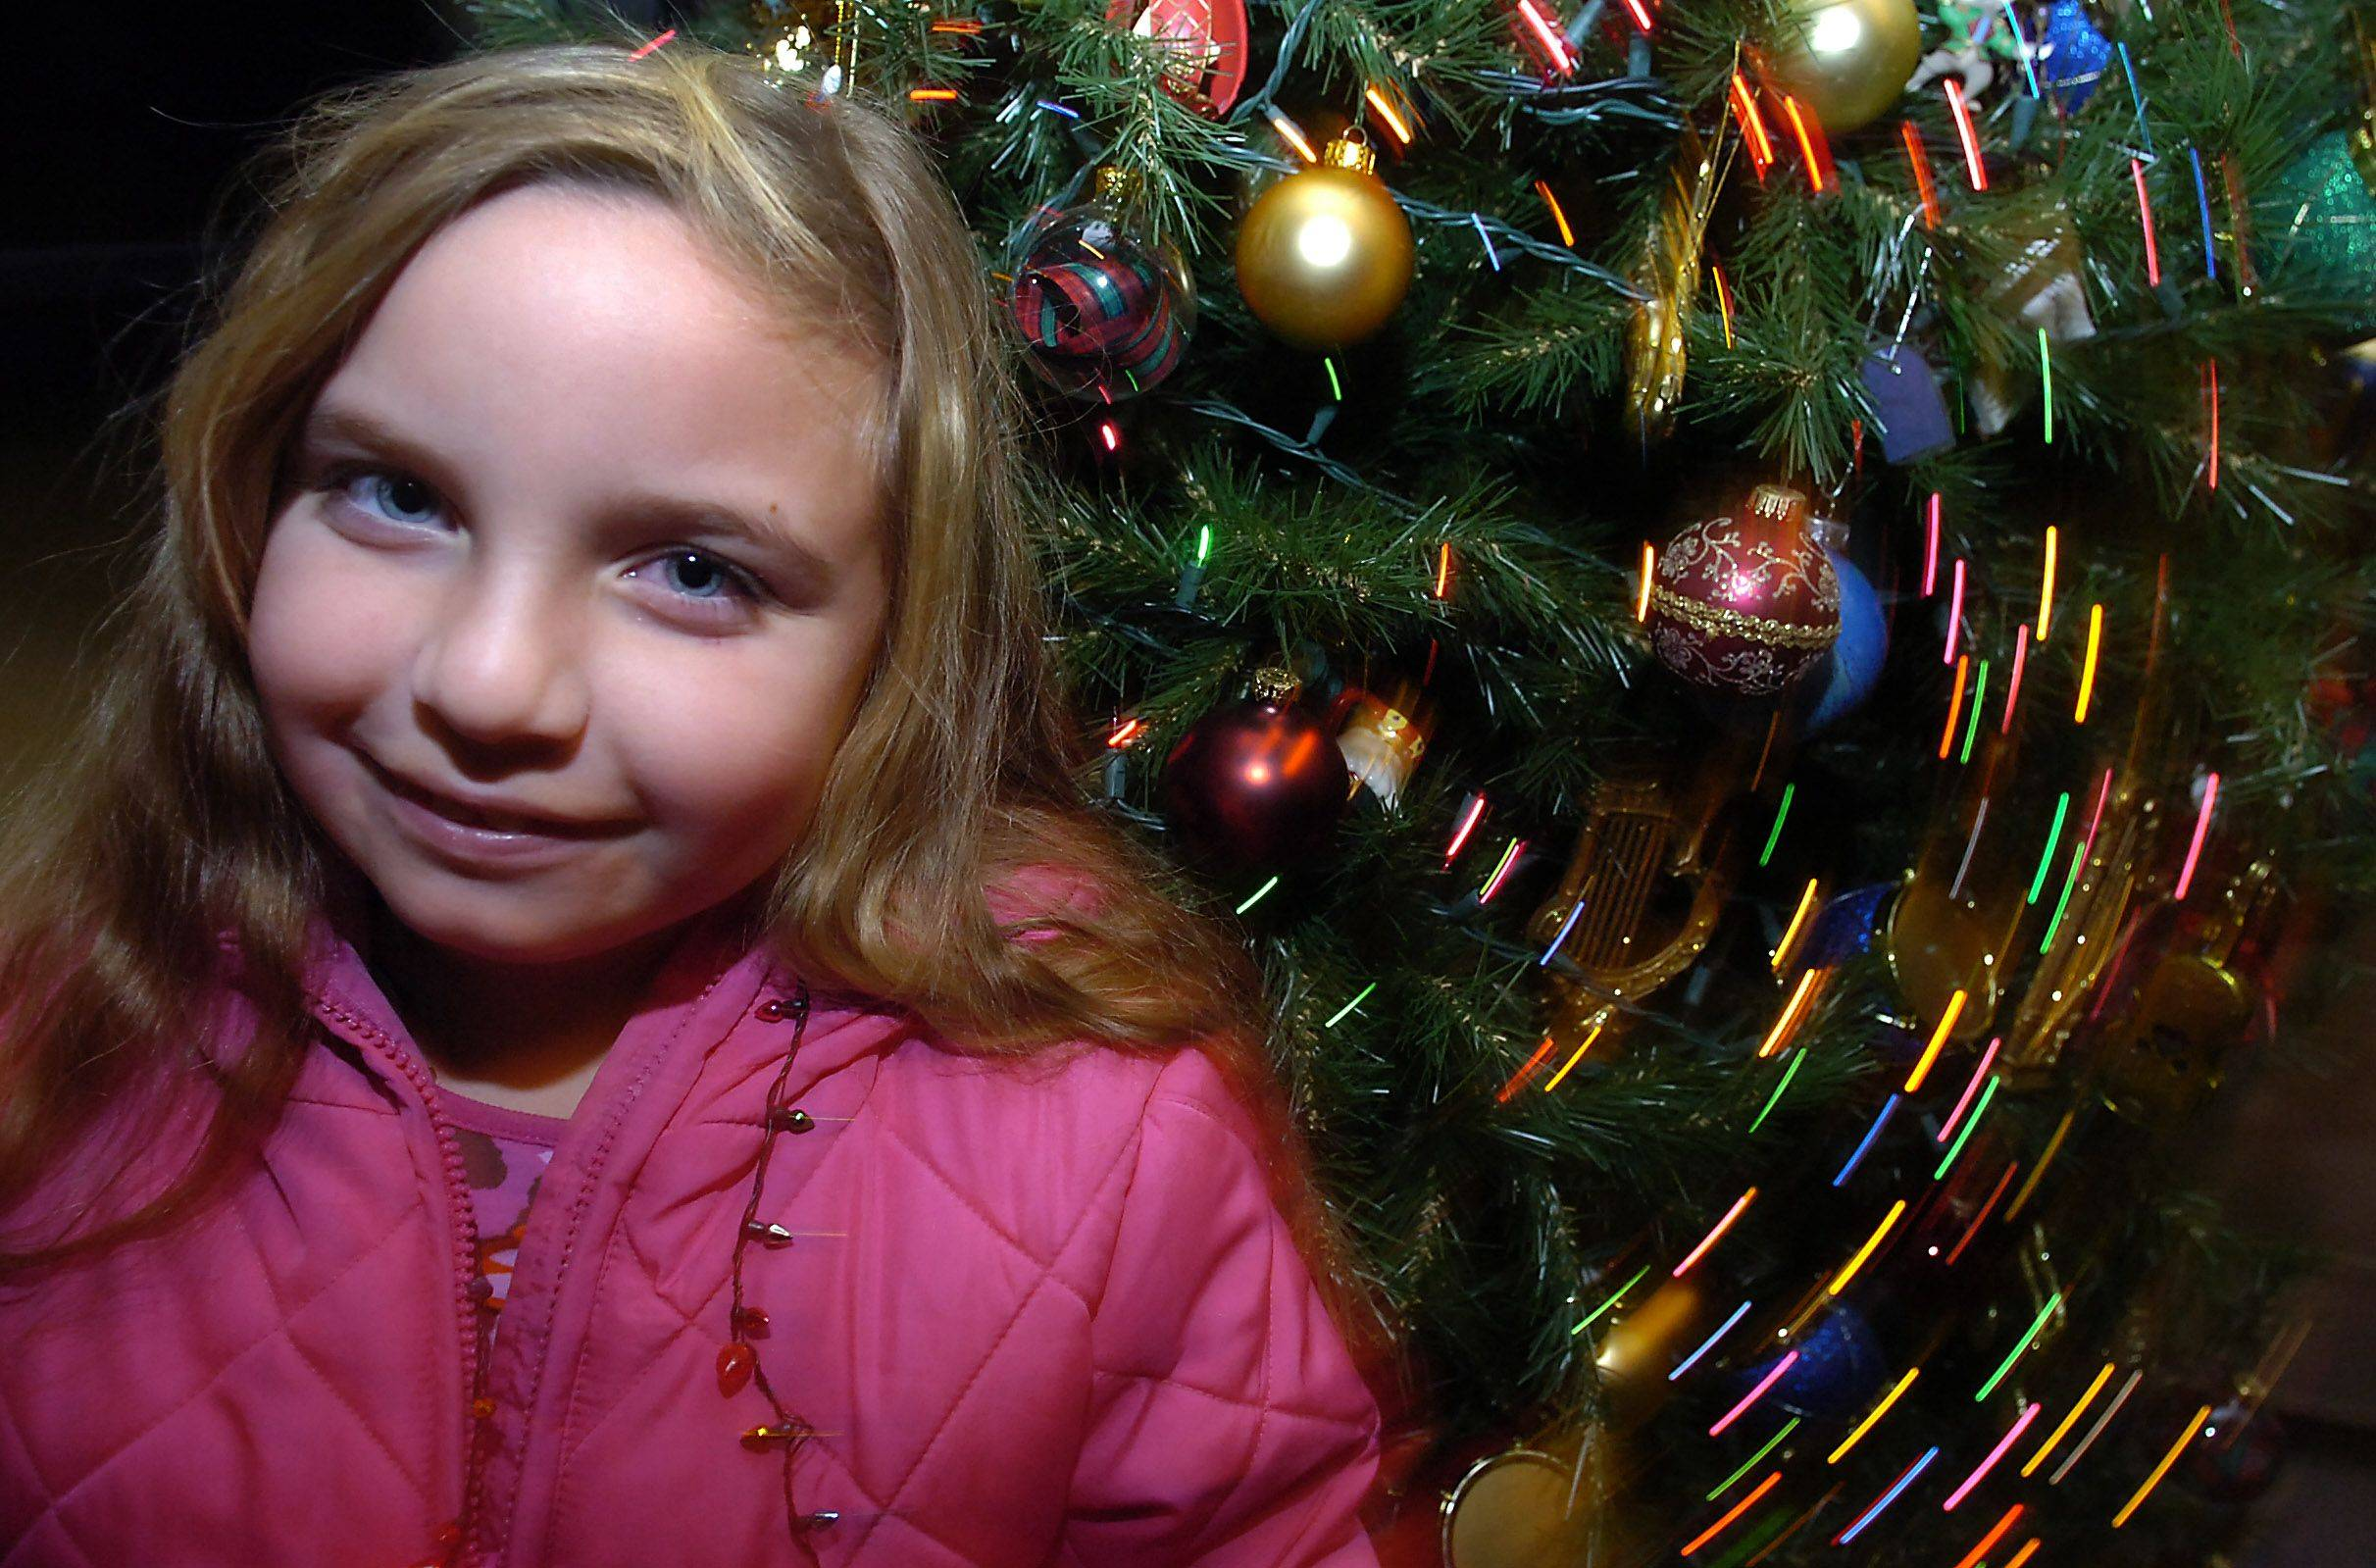 Allison Mamrot ,7, of Huntley takes part in the tree lighting ceremony and sings Christmas songs in Schaumburg at the Prairie Center for the Arts on Friday.